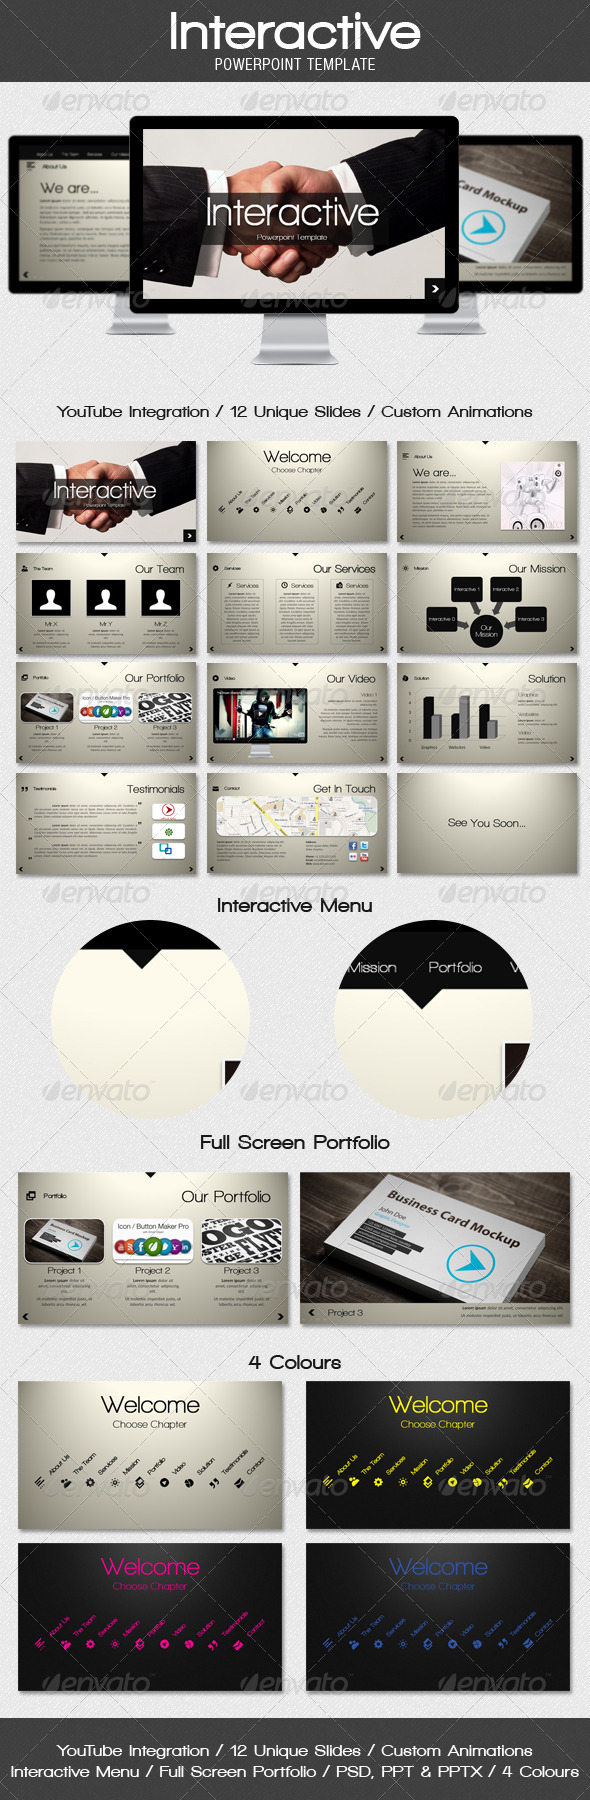 Interactive Powerpoint Template Power Point Powerpoint